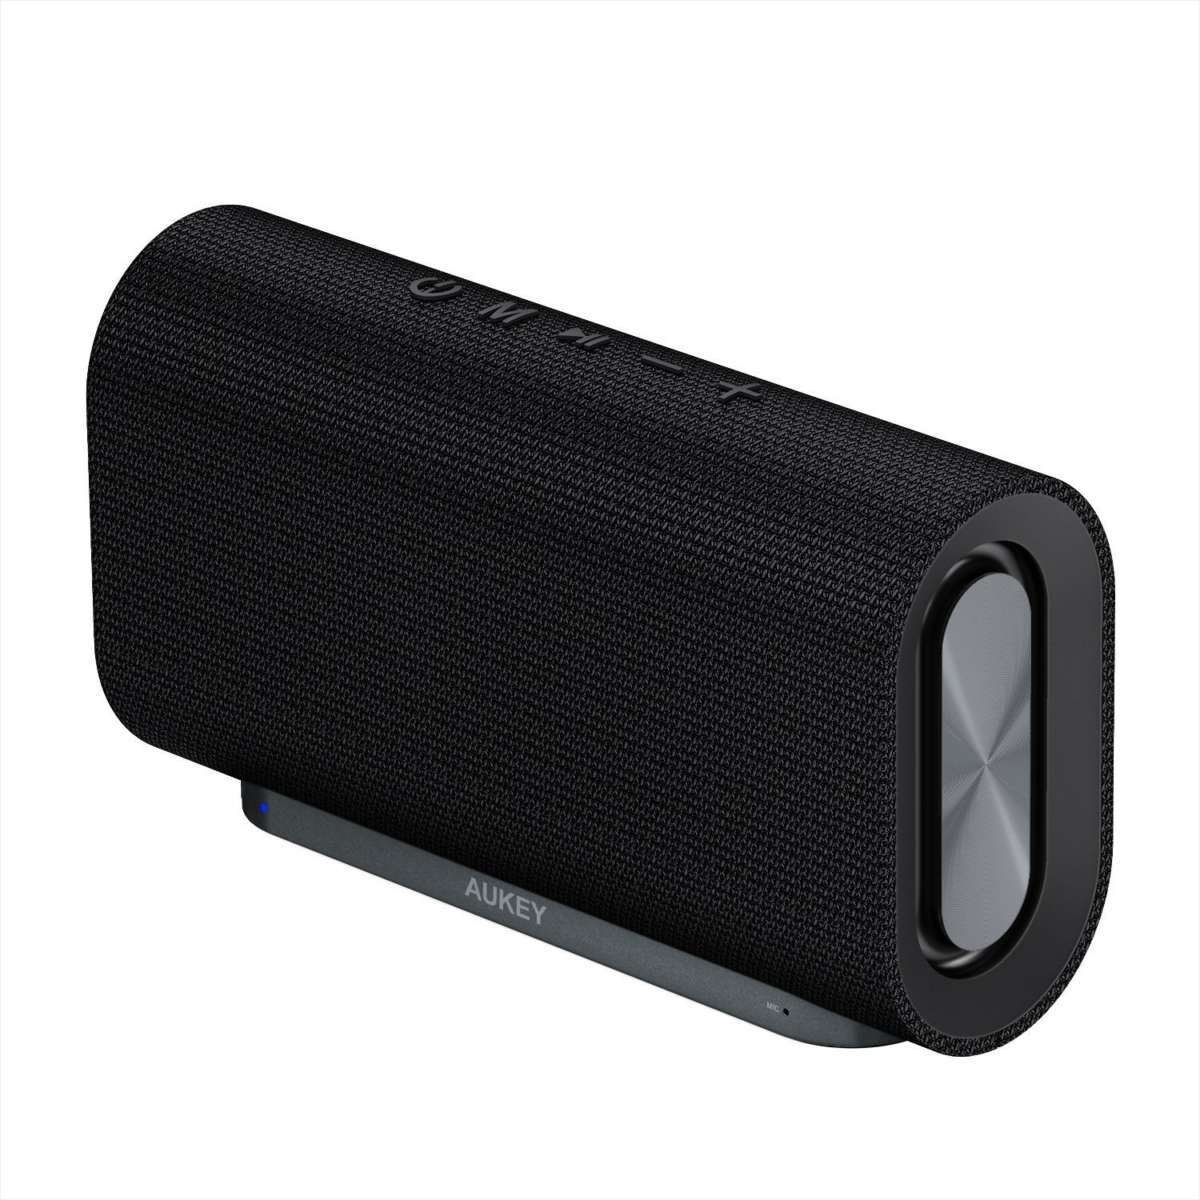 Regali Tech - Speaker Bluetooth Aukey SK-M30.jpg